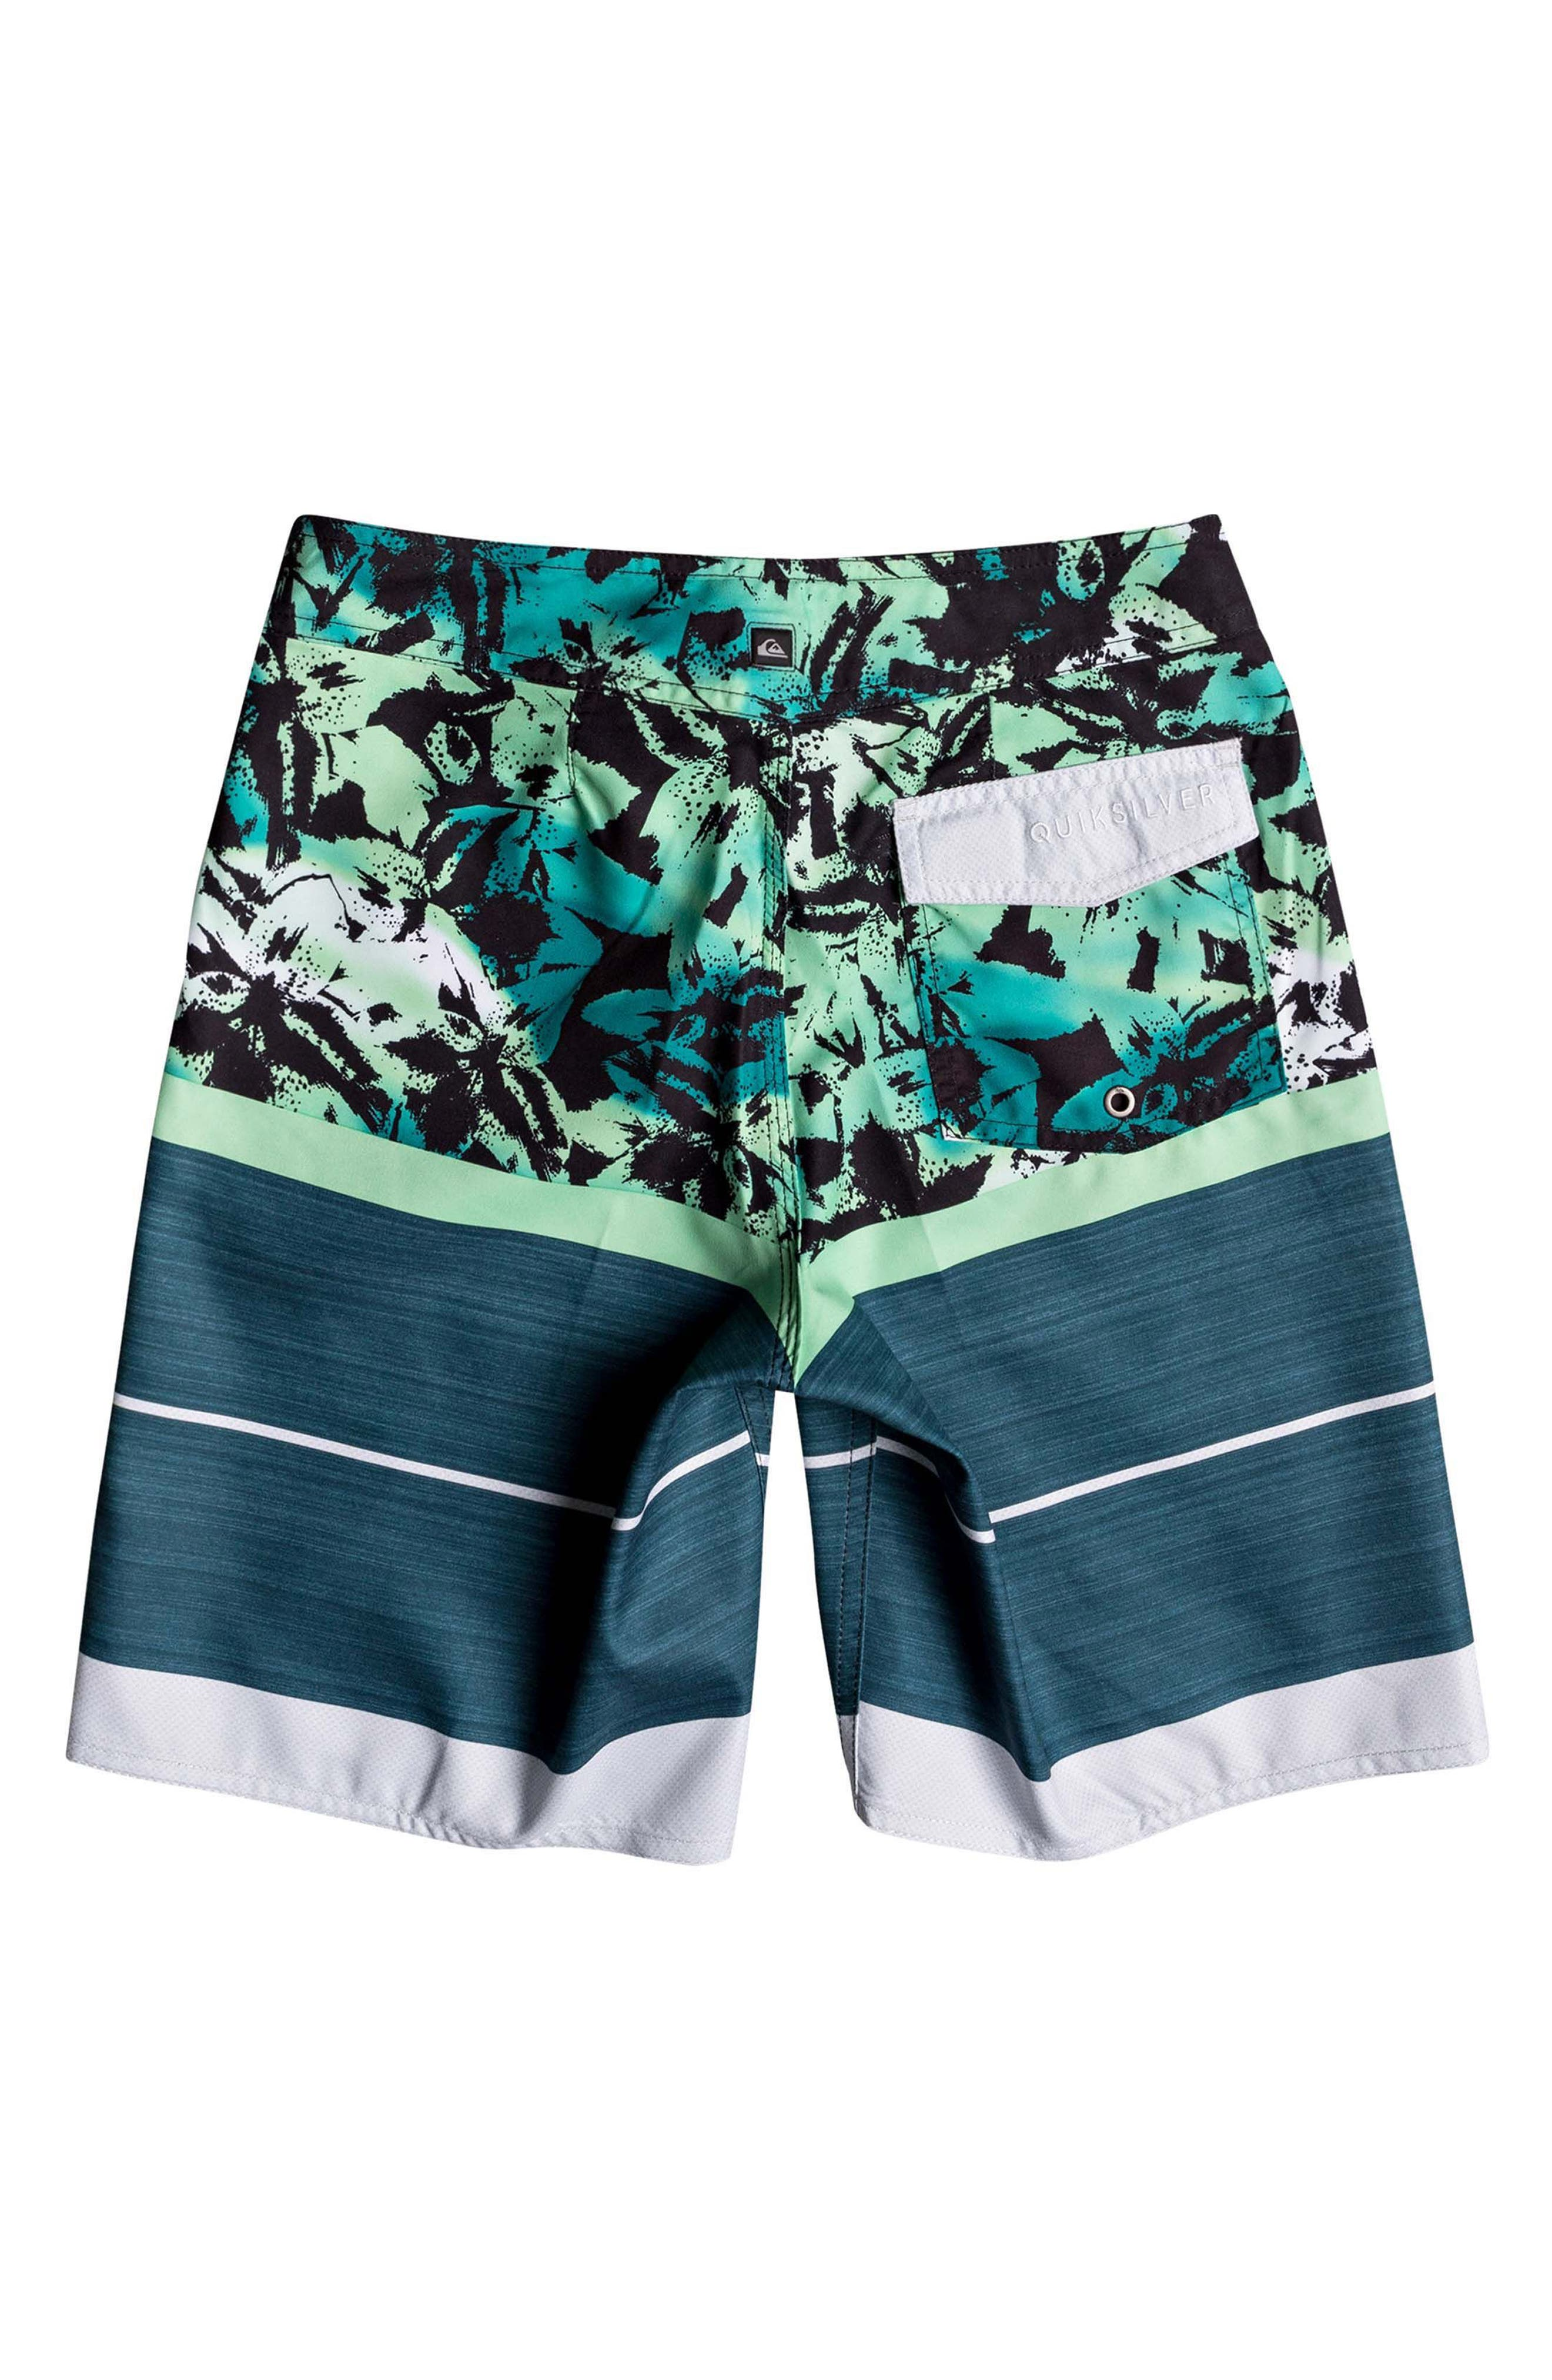 QUIKSILVER,                             Slab Island Board Shorts,                             Alternate thumbnail 2, color,                             406